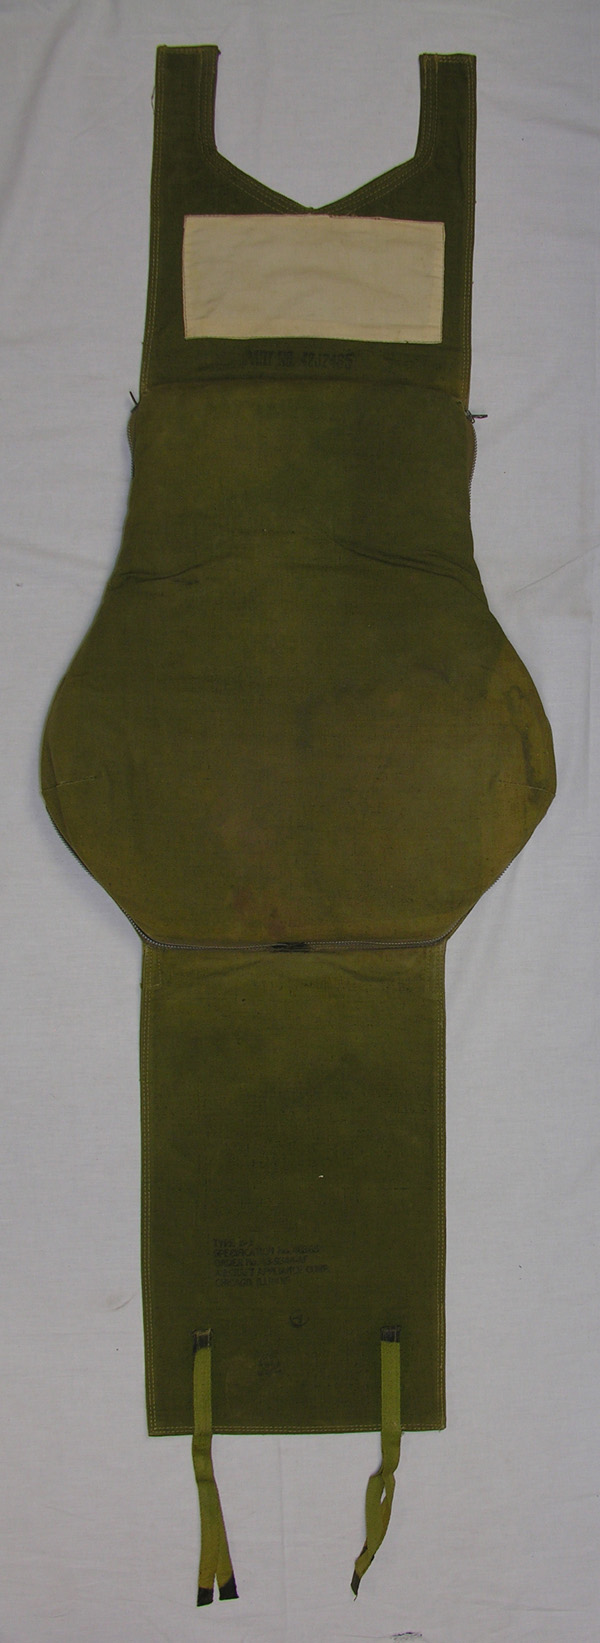 USAAF B-1 Emergency Survival Back Pad Kit